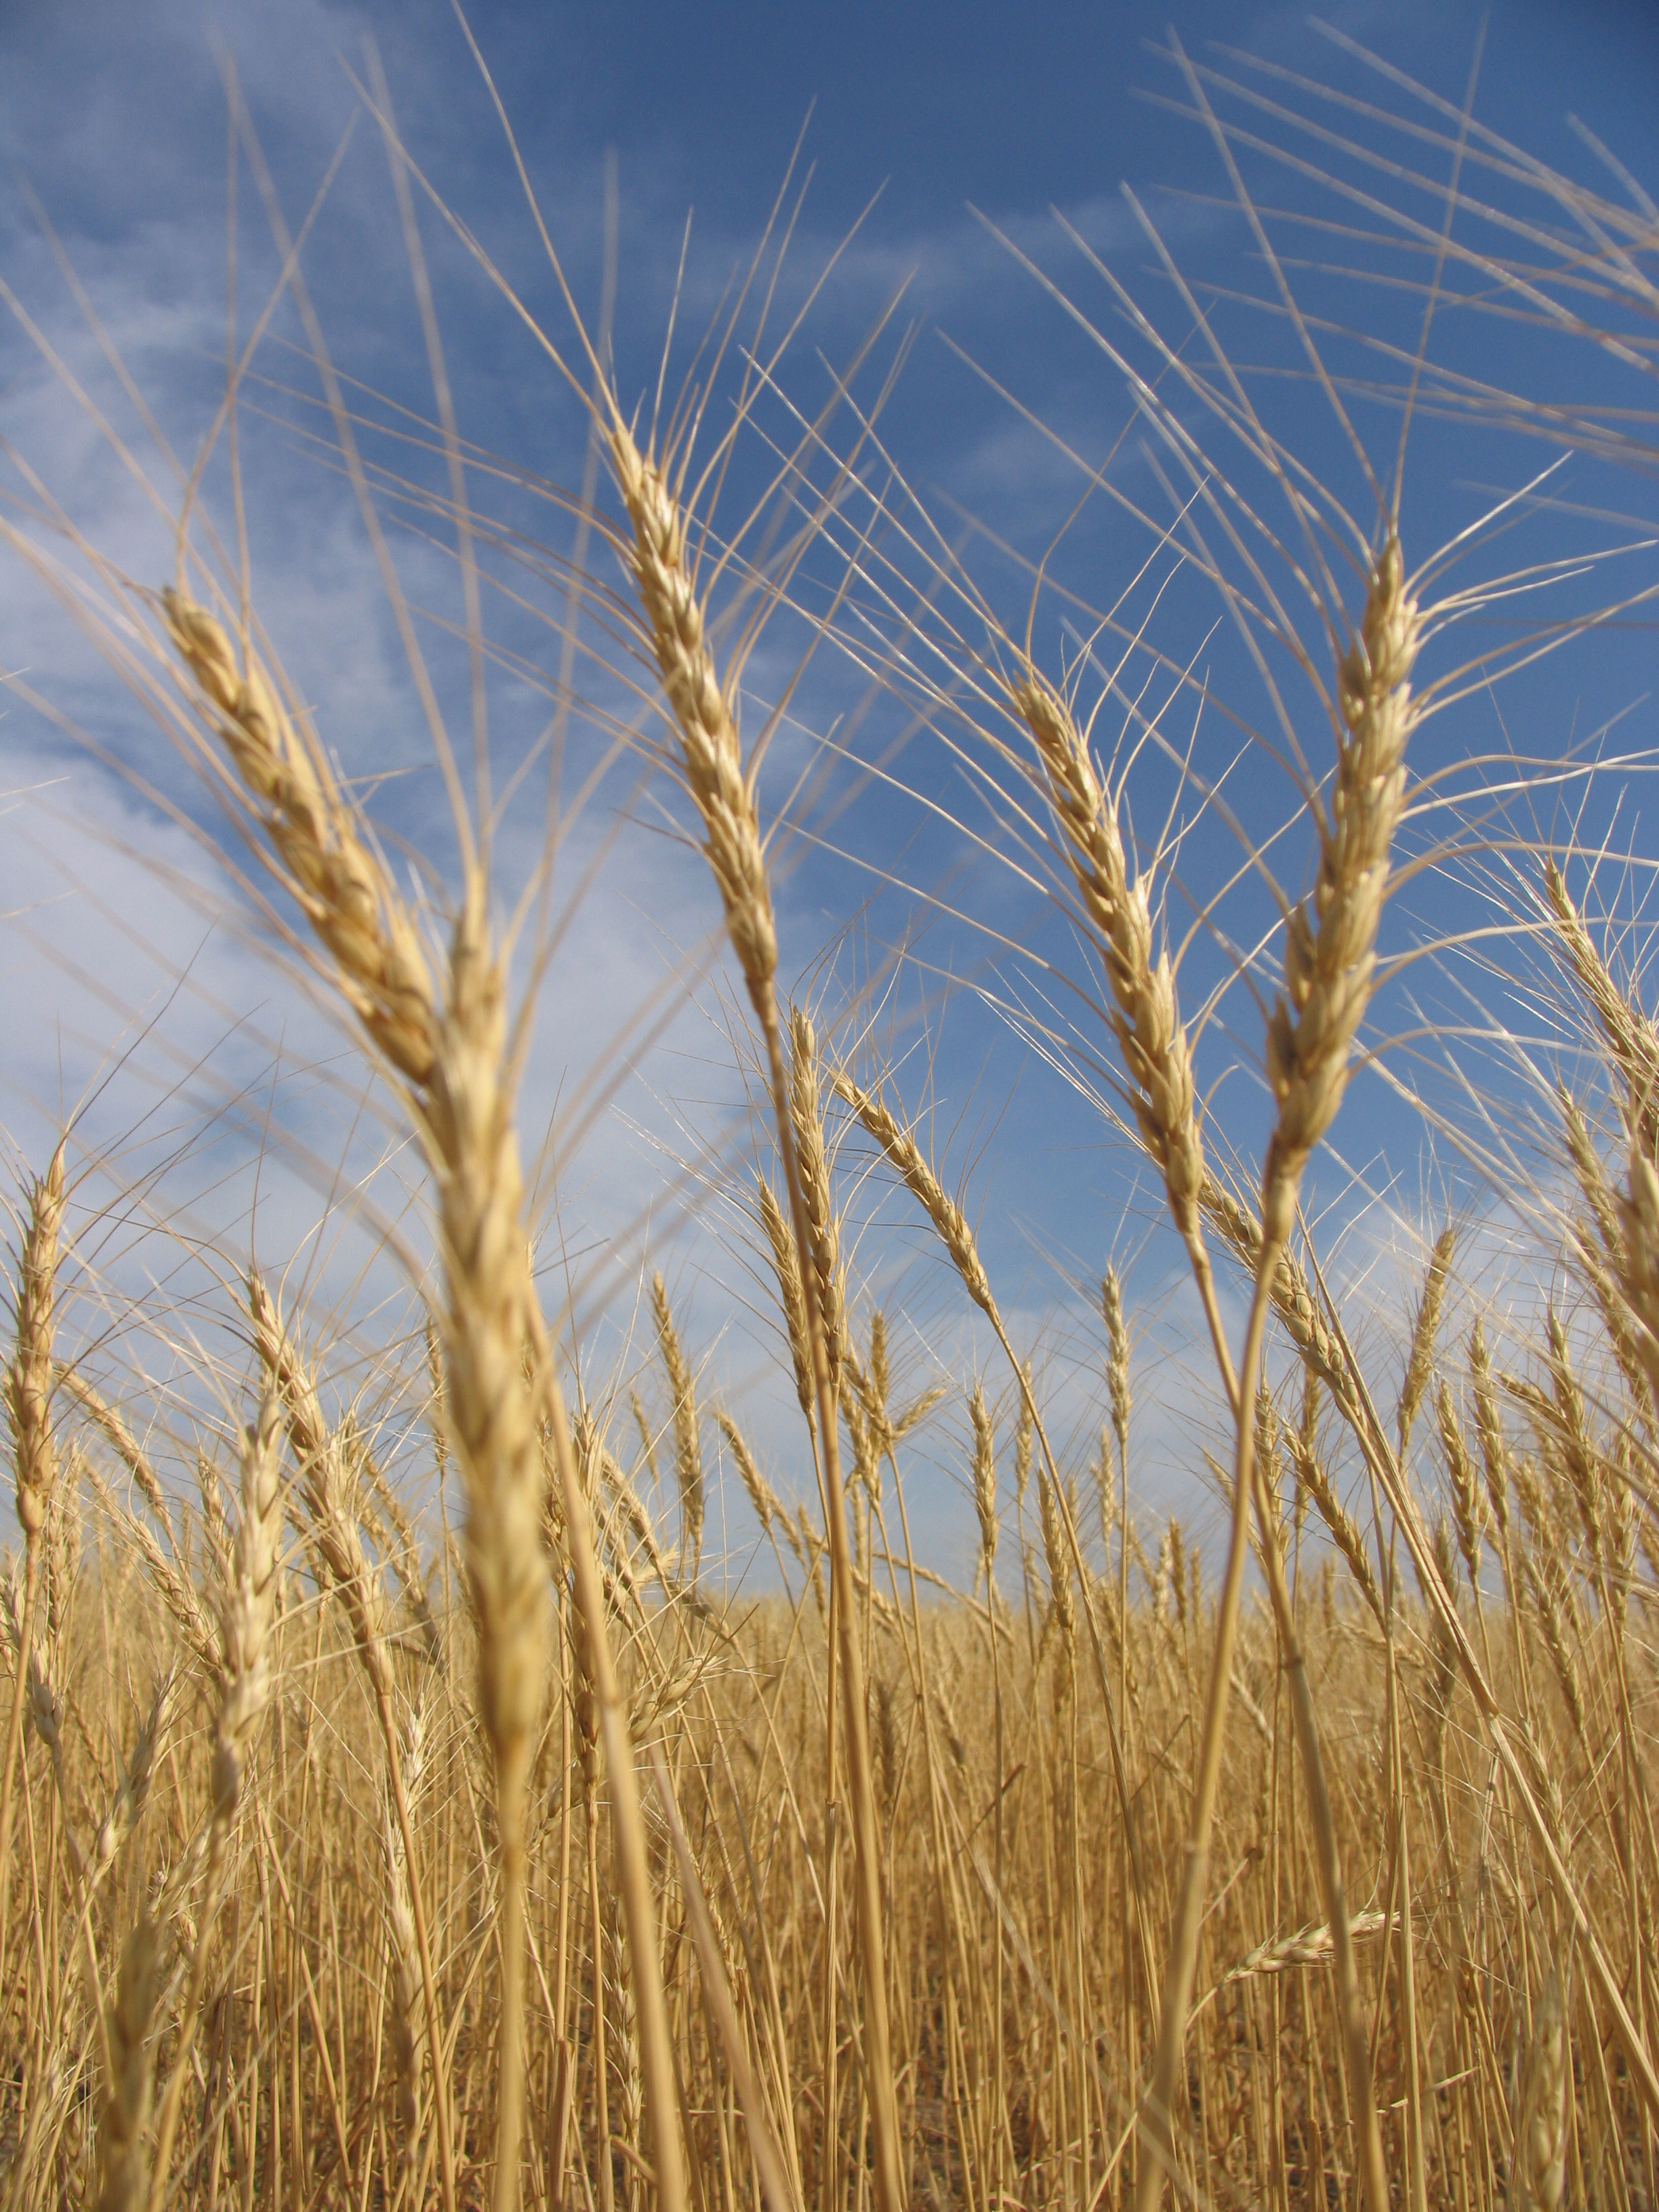 Straws, Agriculture, Raw, Malt, Meal, HQ Photo